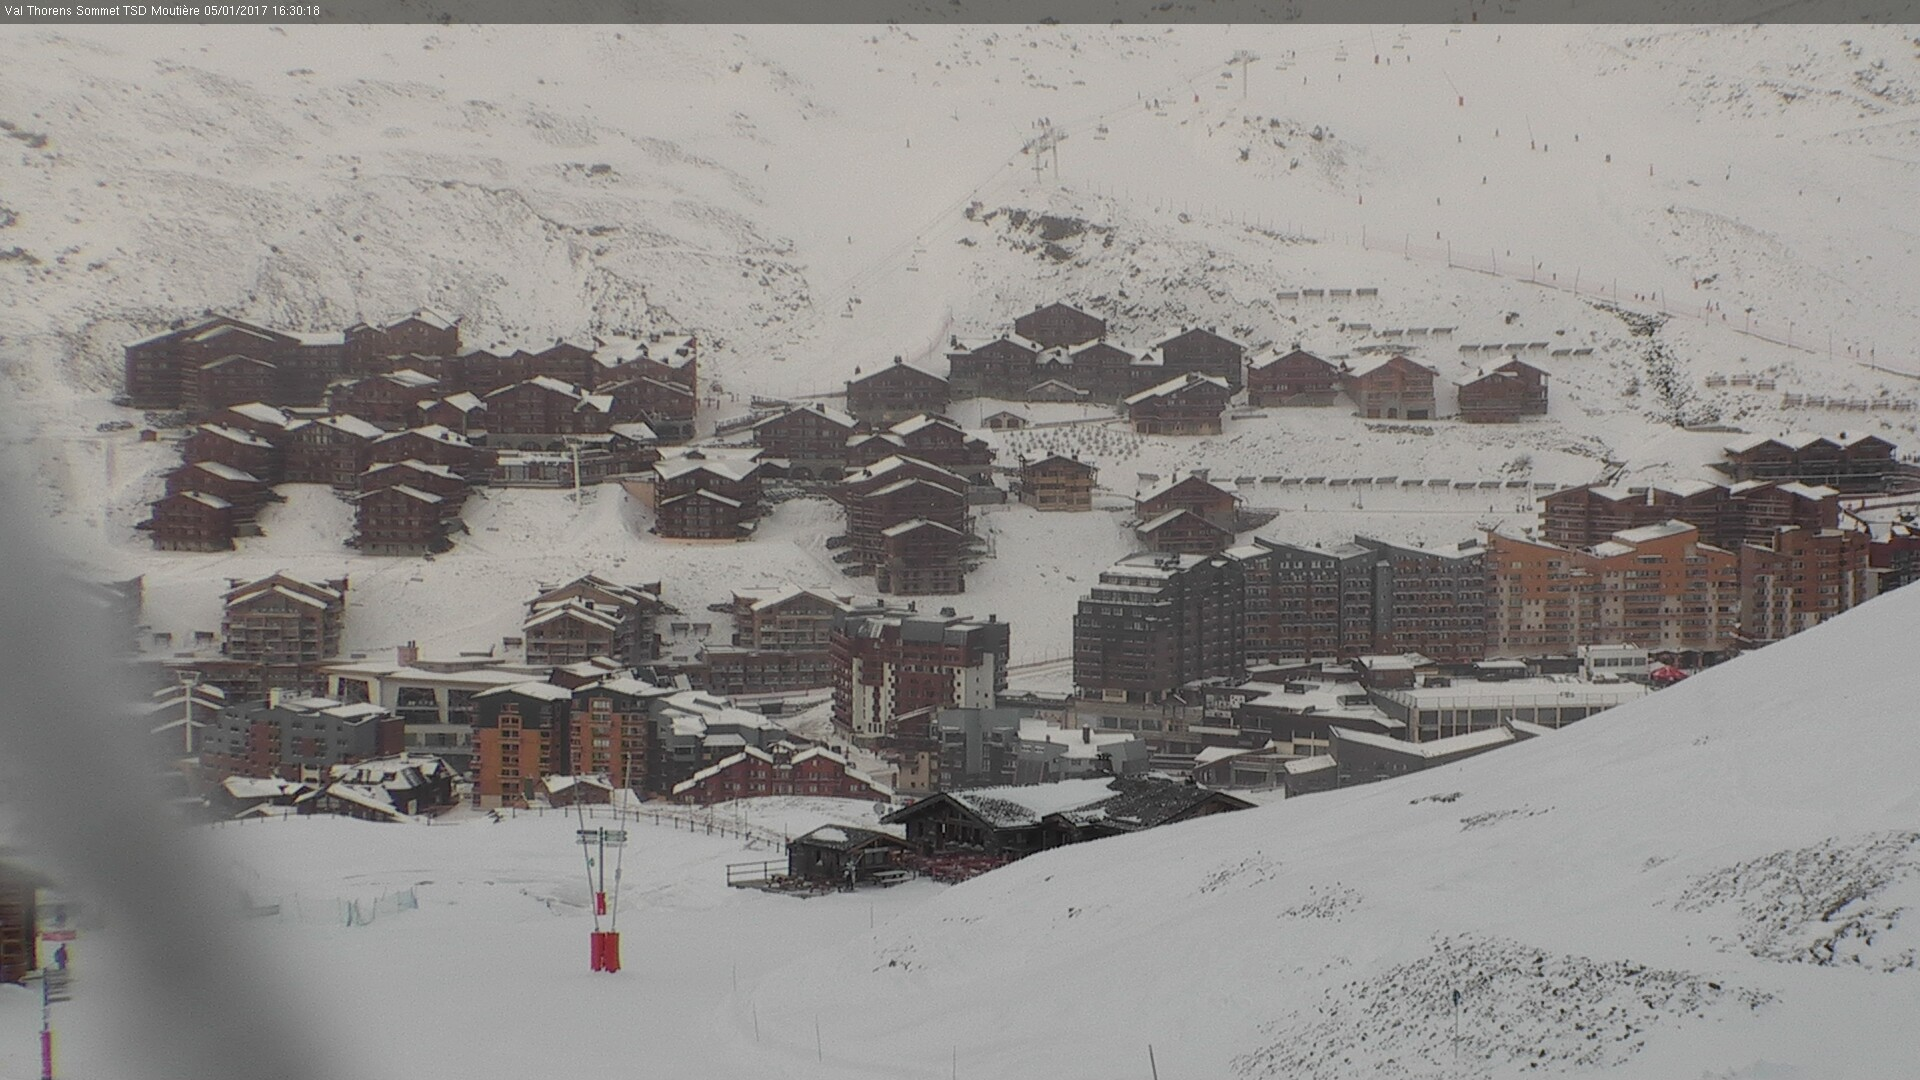 Val Thorens webcam